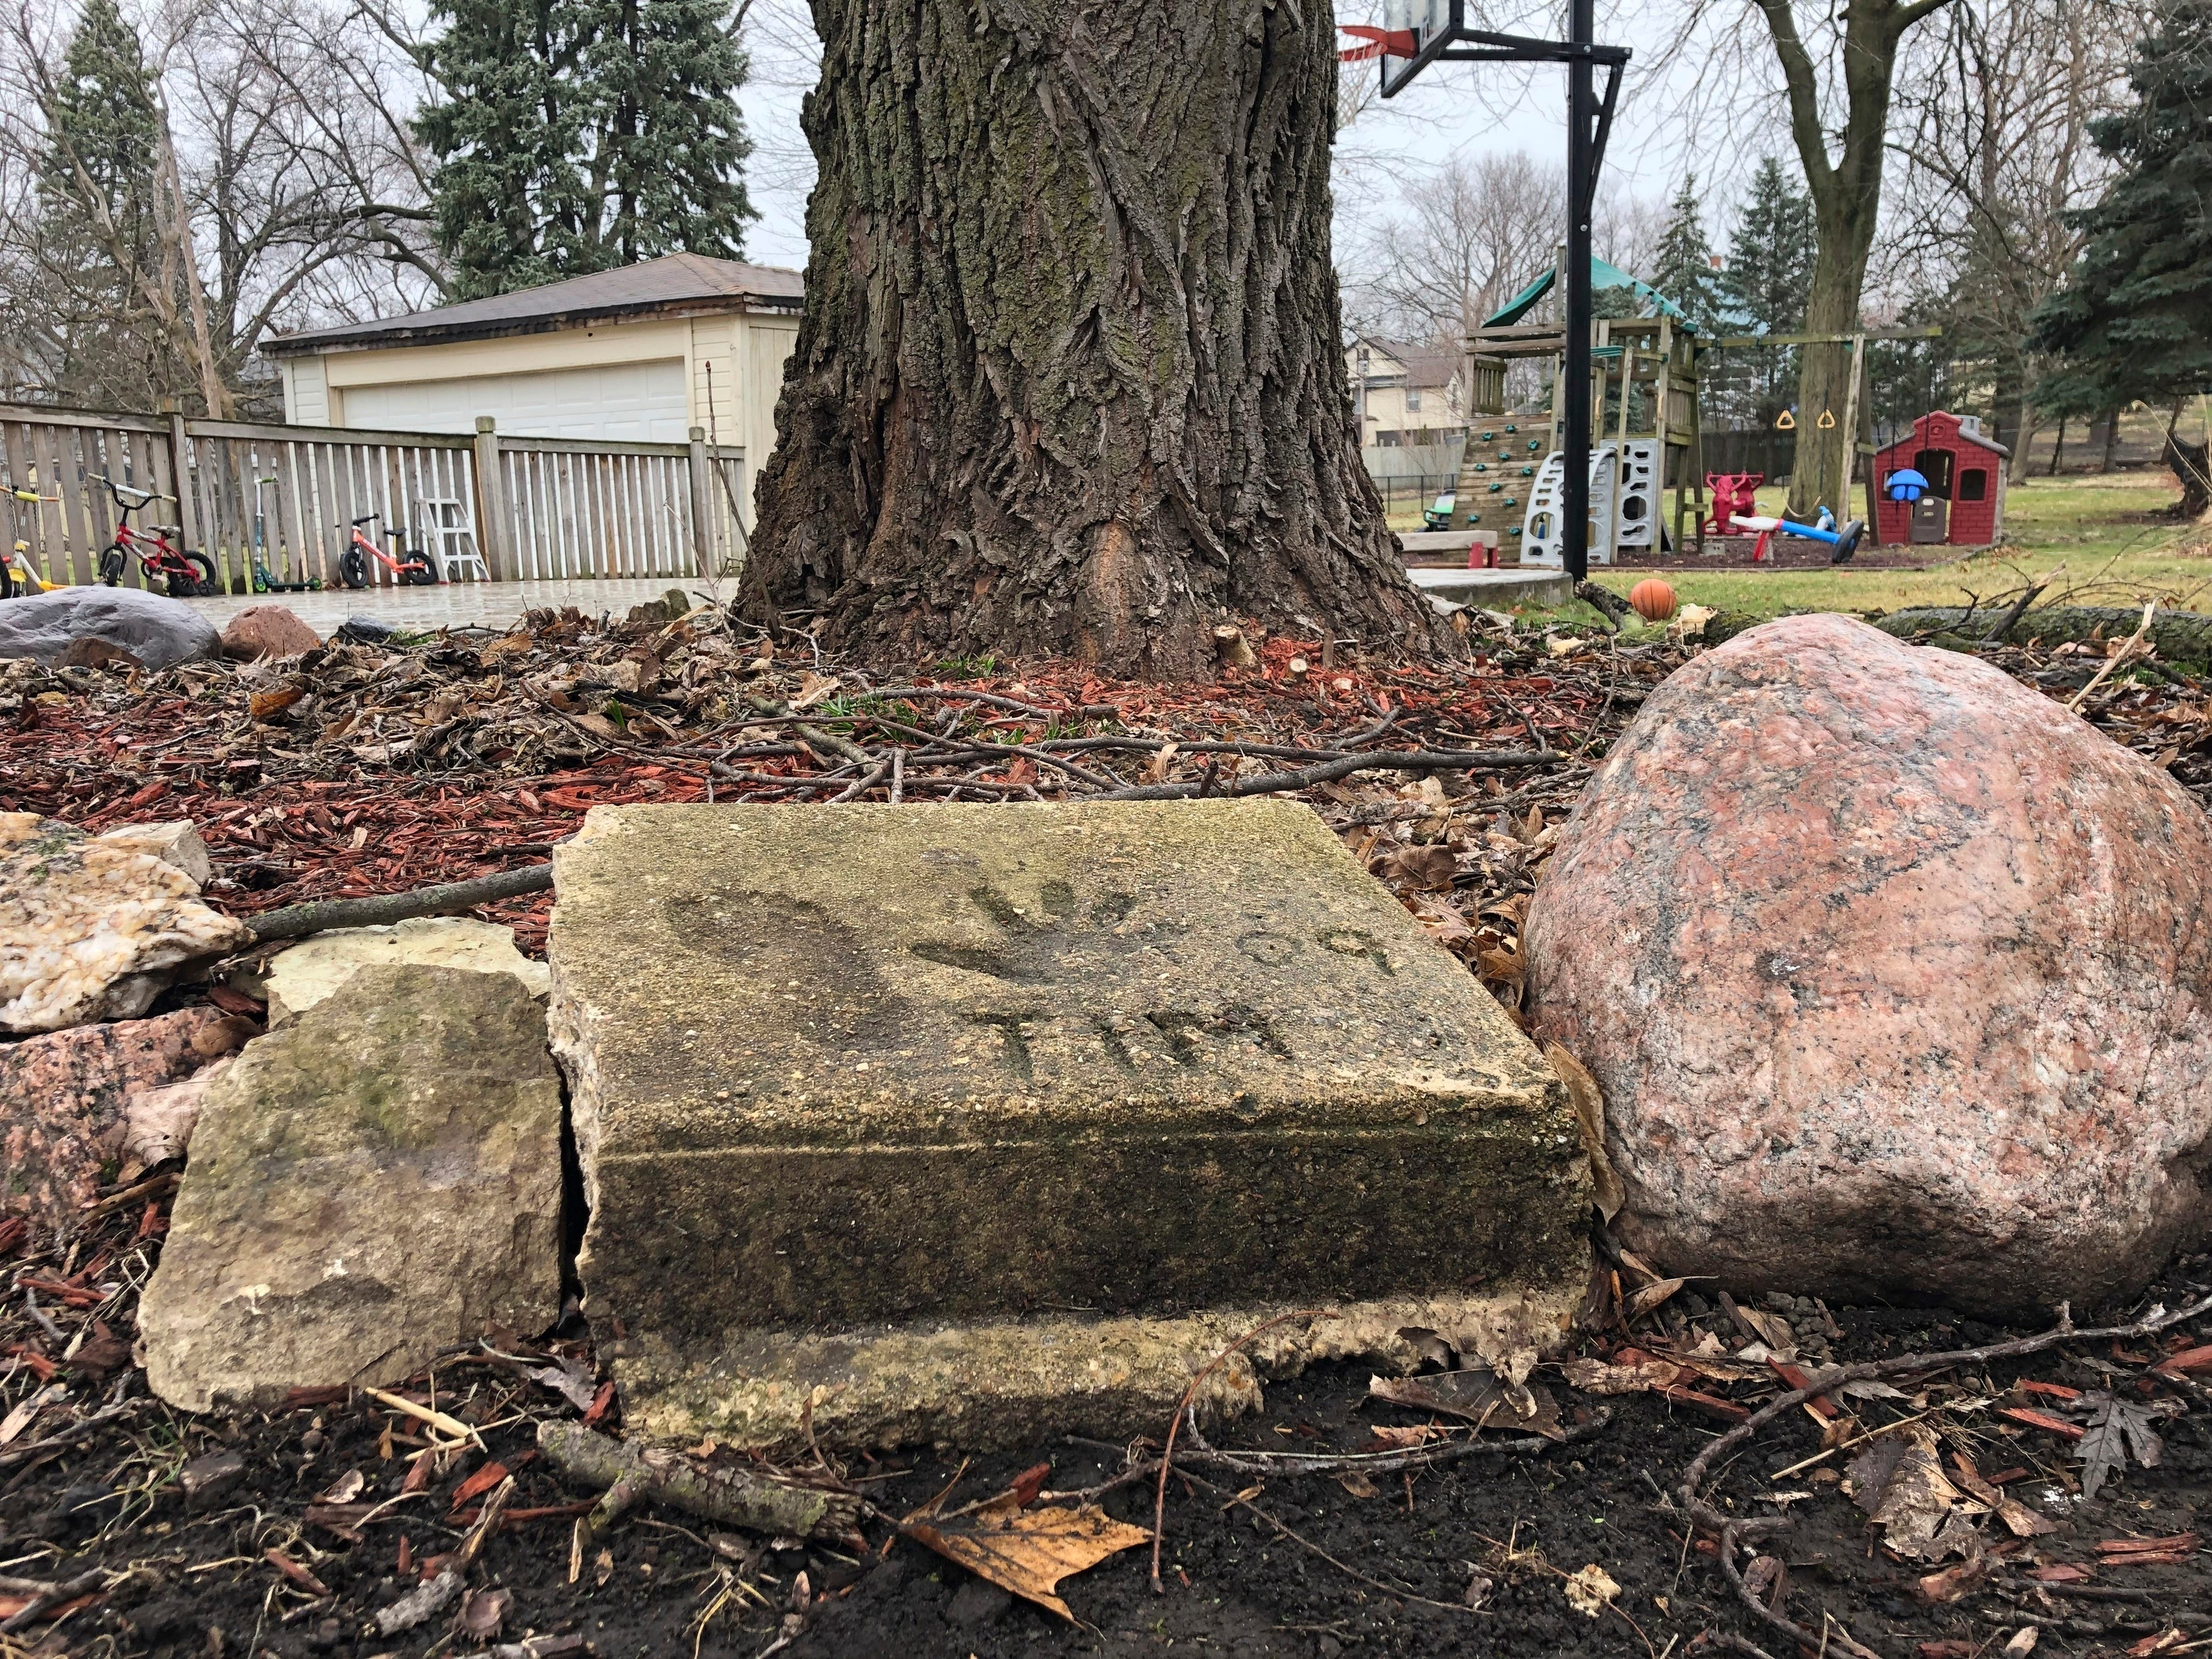 A slab of concrete sits in the backyard of the house where Timmothy Pitzen used to live in Aurora, Illinois. The man who lives in the house now, Pedro Melendez, says he didn't know the boy but saved the concrete slab with Tim's name, handprint and footprint etched in it when he redid the back patio.